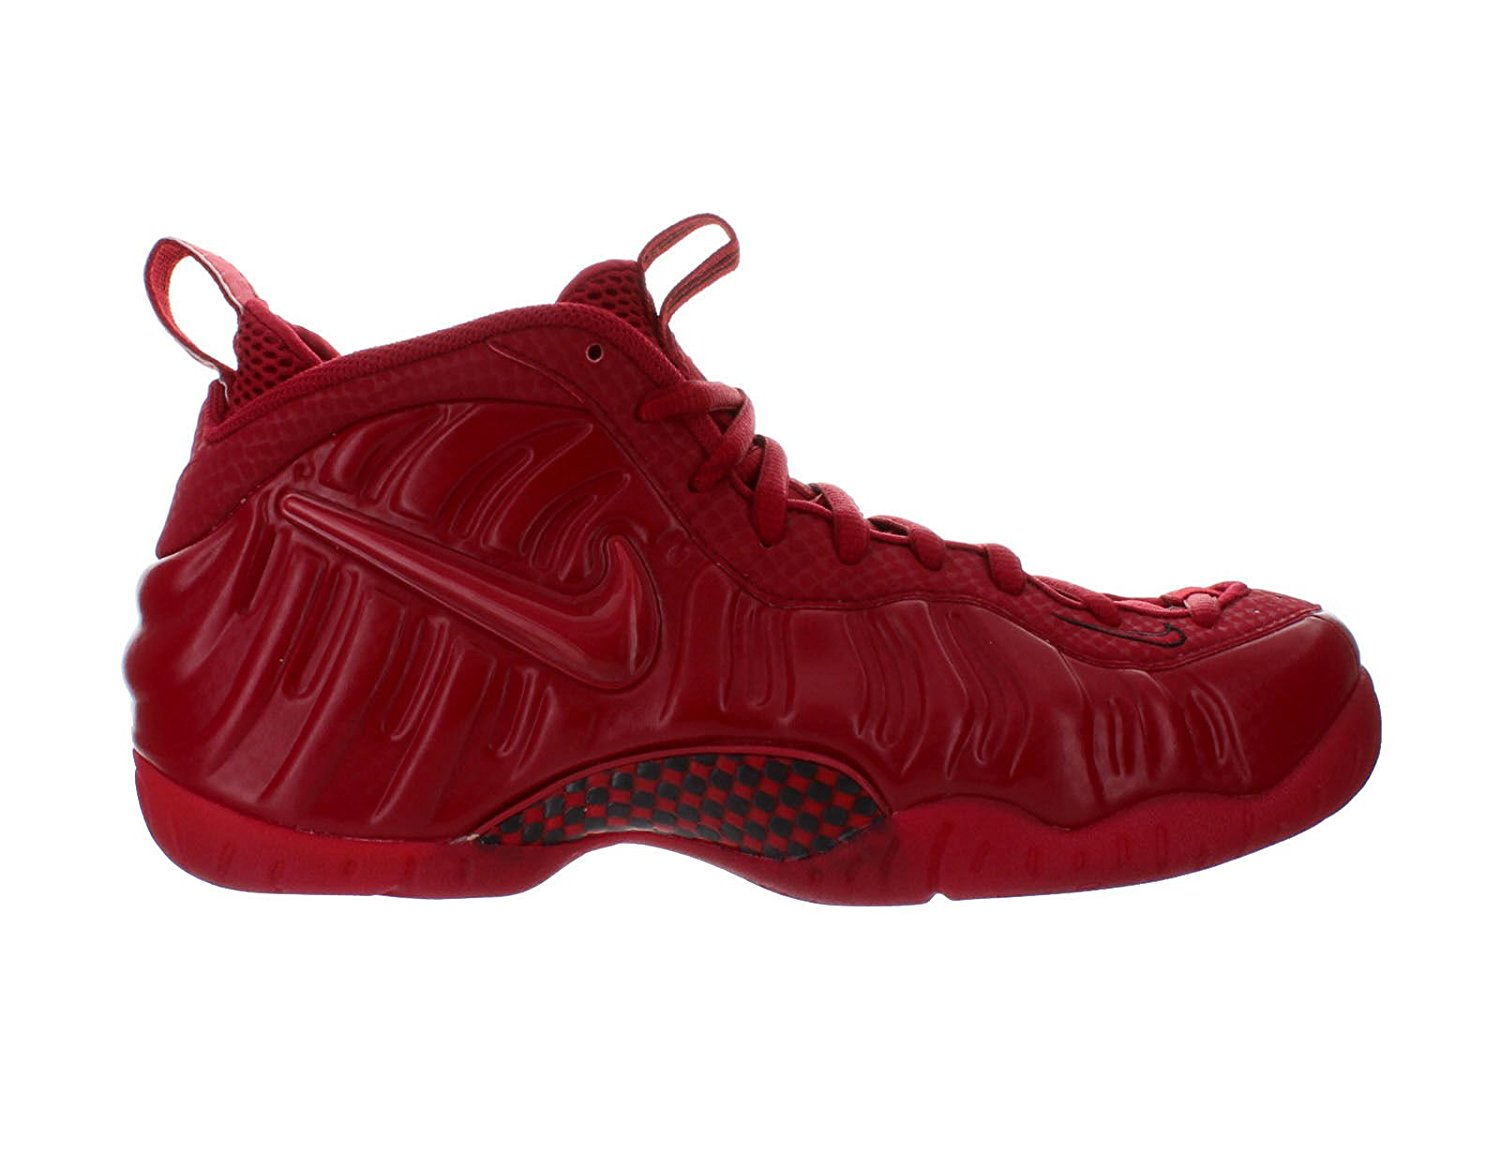 a5cdc495b43fb Get Quotations · Nike Little Foamposite Little Posite Pro Red October Sz 5Y  Gs 644792 601 (5)